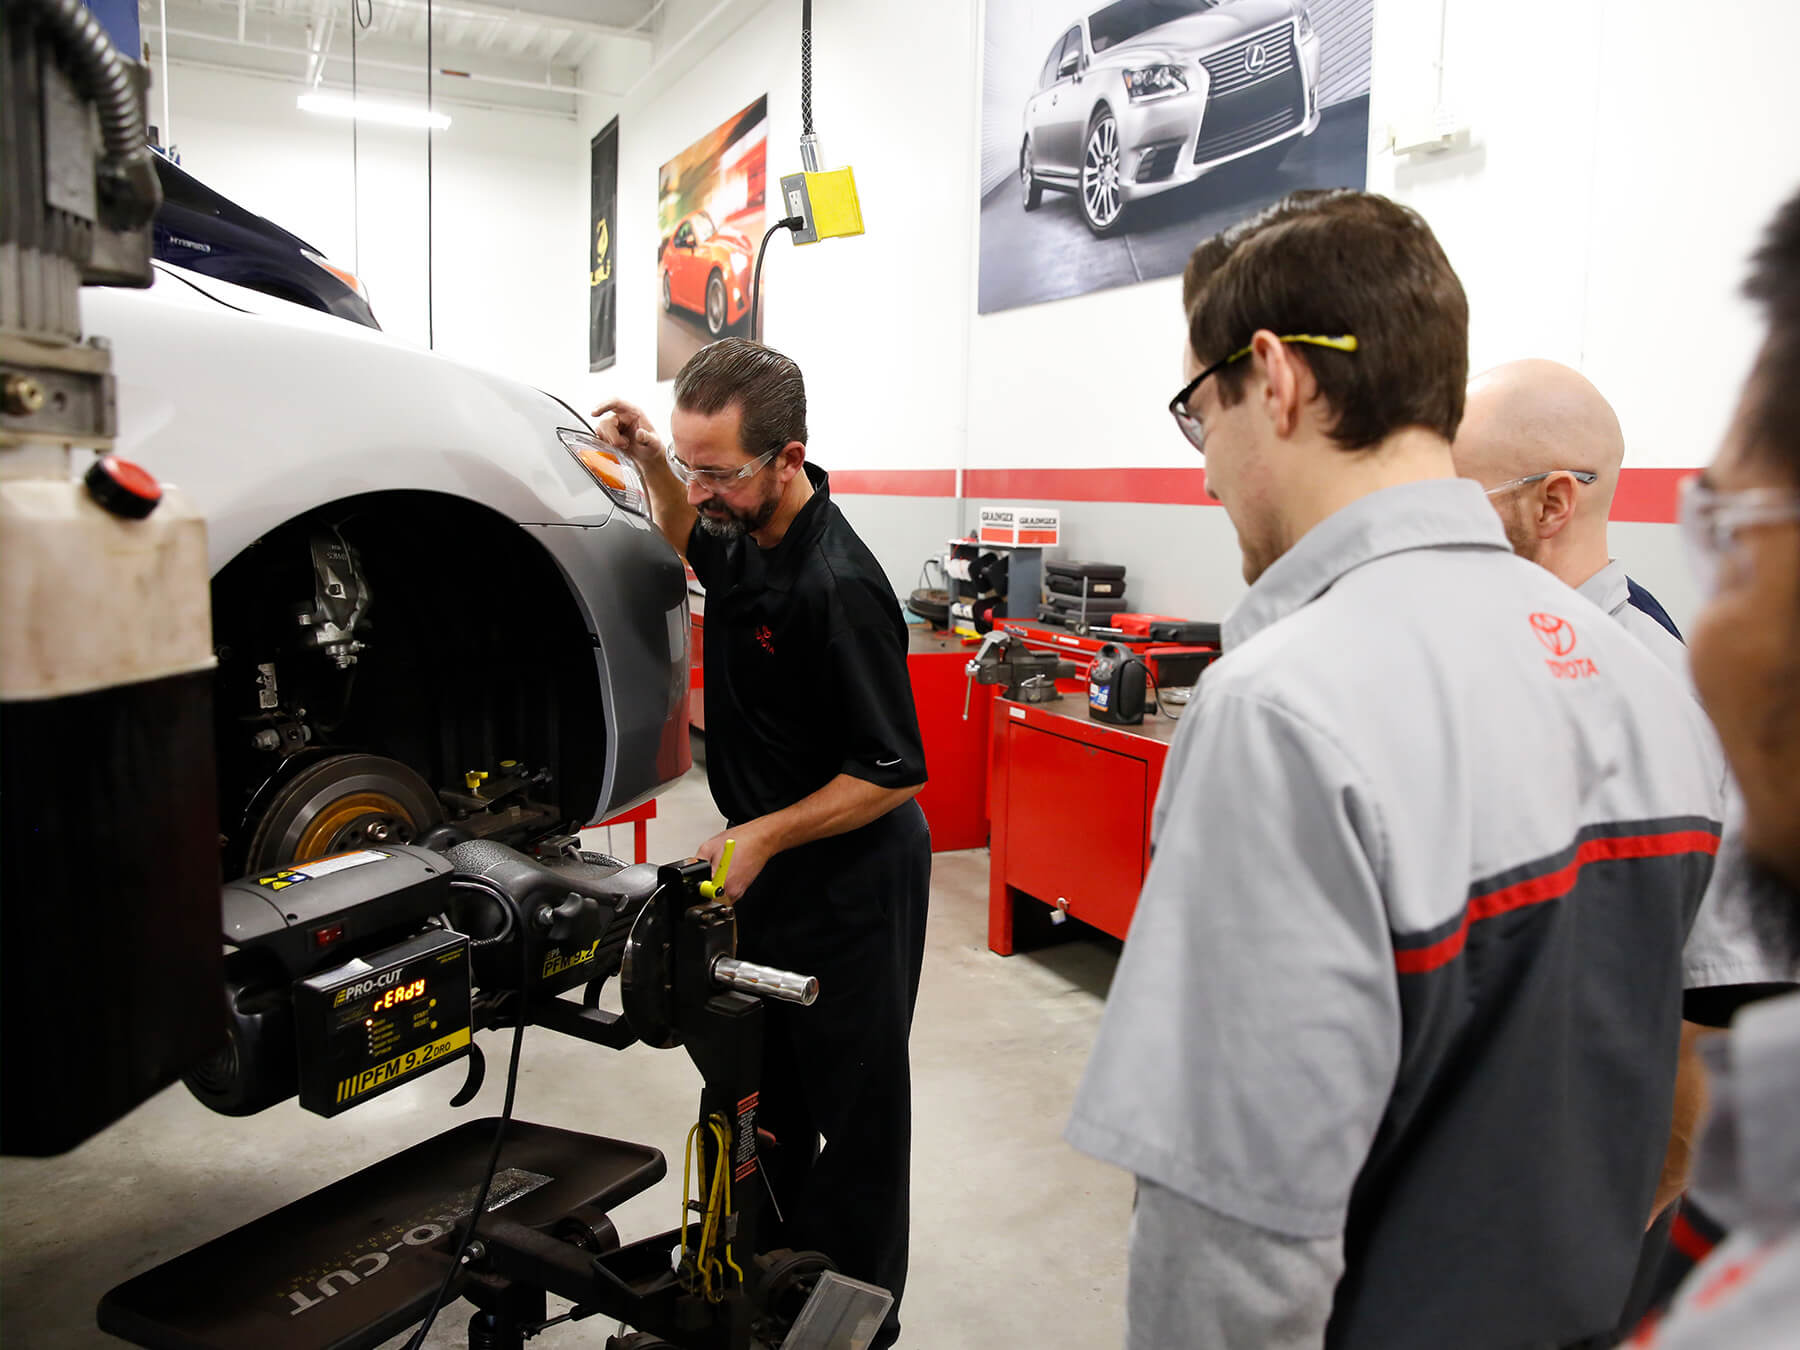 UTI students and instructor working on a tire in the Toyota auto lab